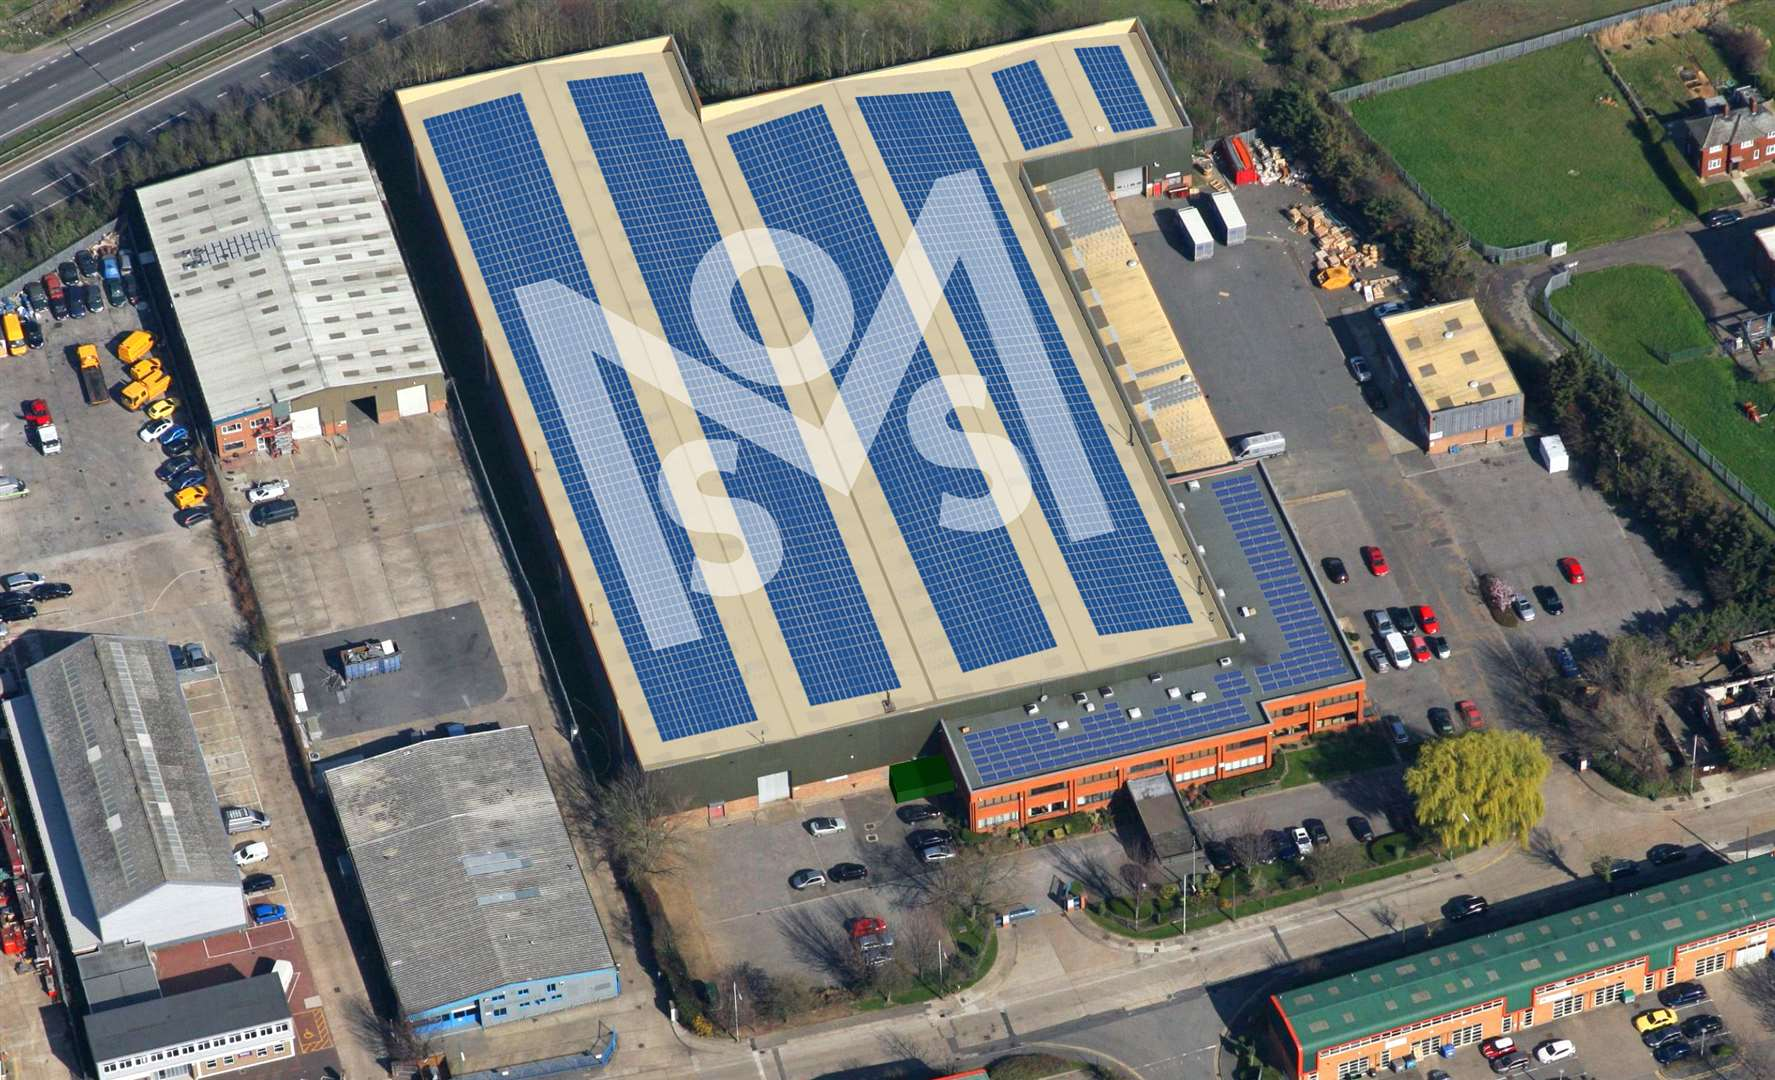 Moss Electrical's headquarters in Dartford